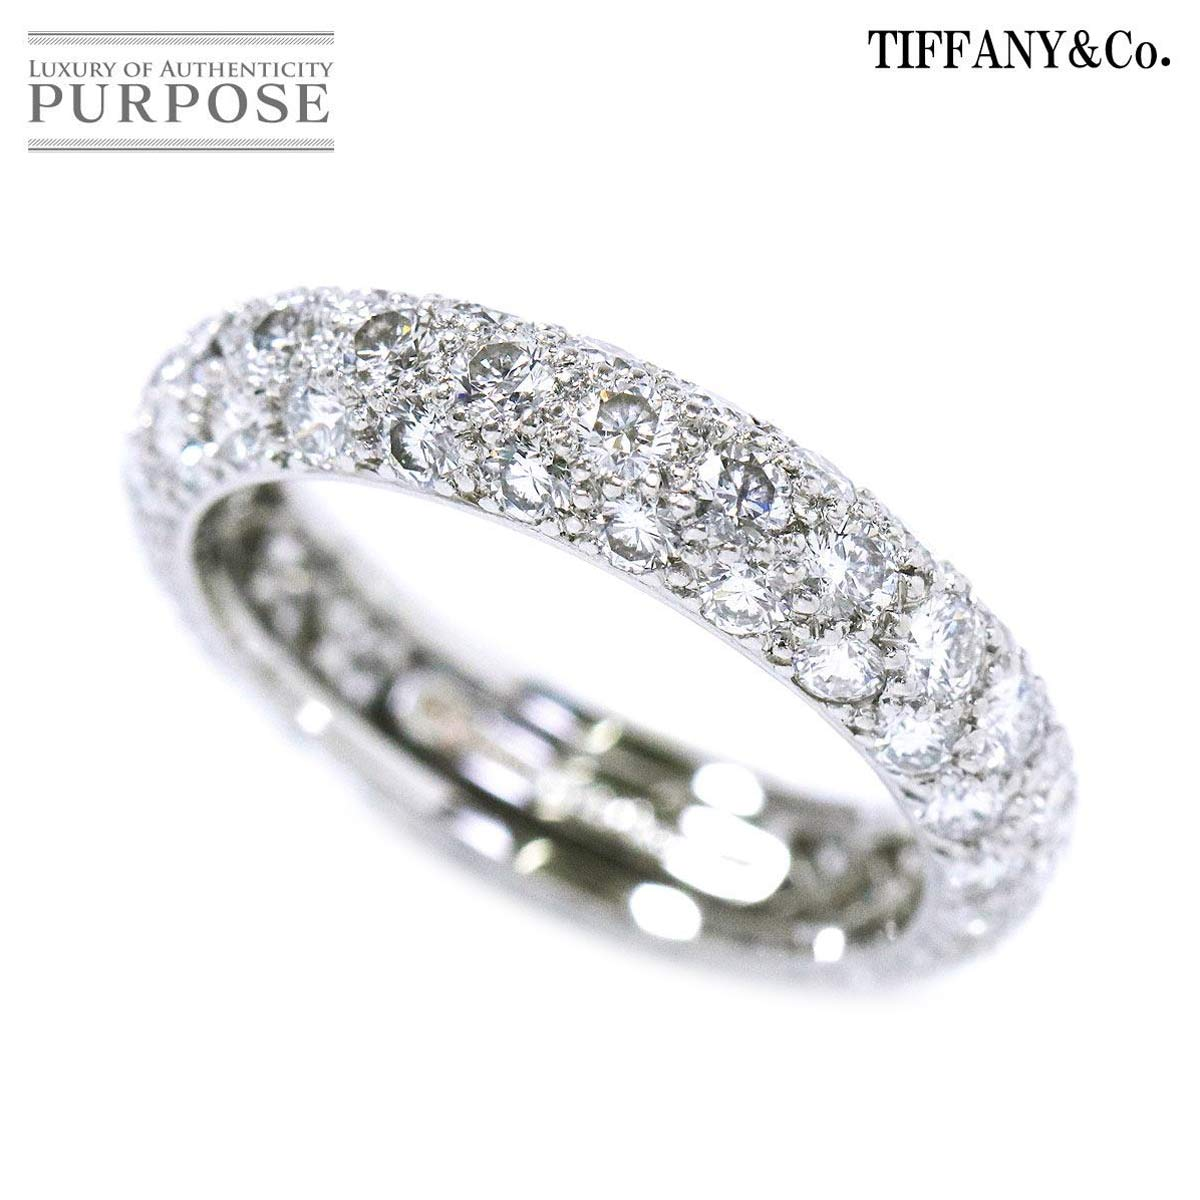 Purpose Inc 6 Ring Pt950 Platinum